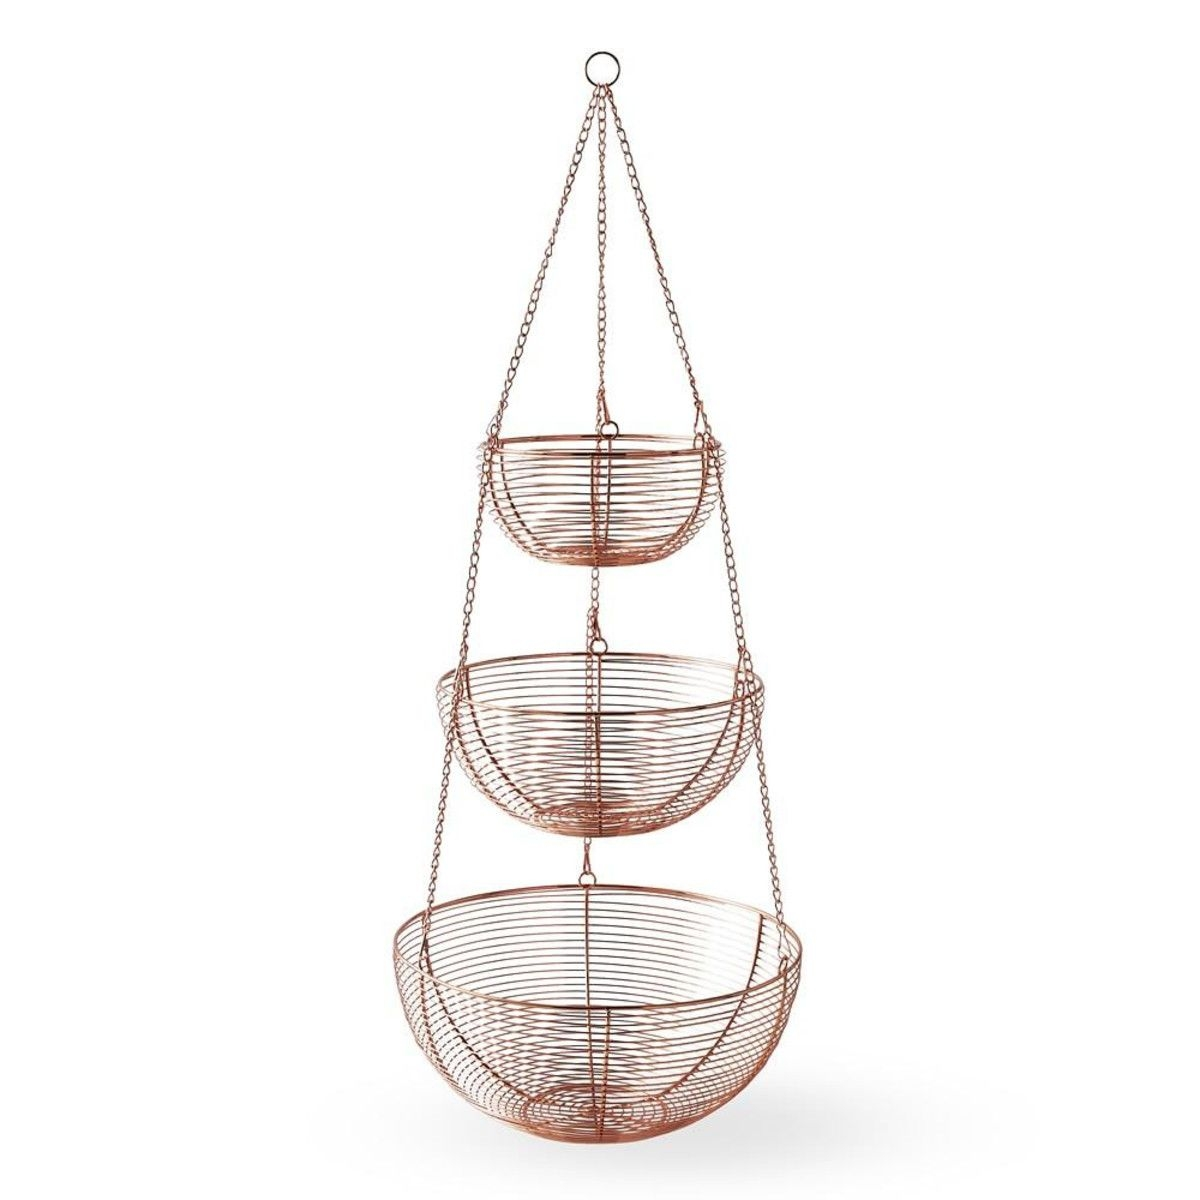 3 Tiered Wire Basket You Ll Love In 2021 Visualhunt